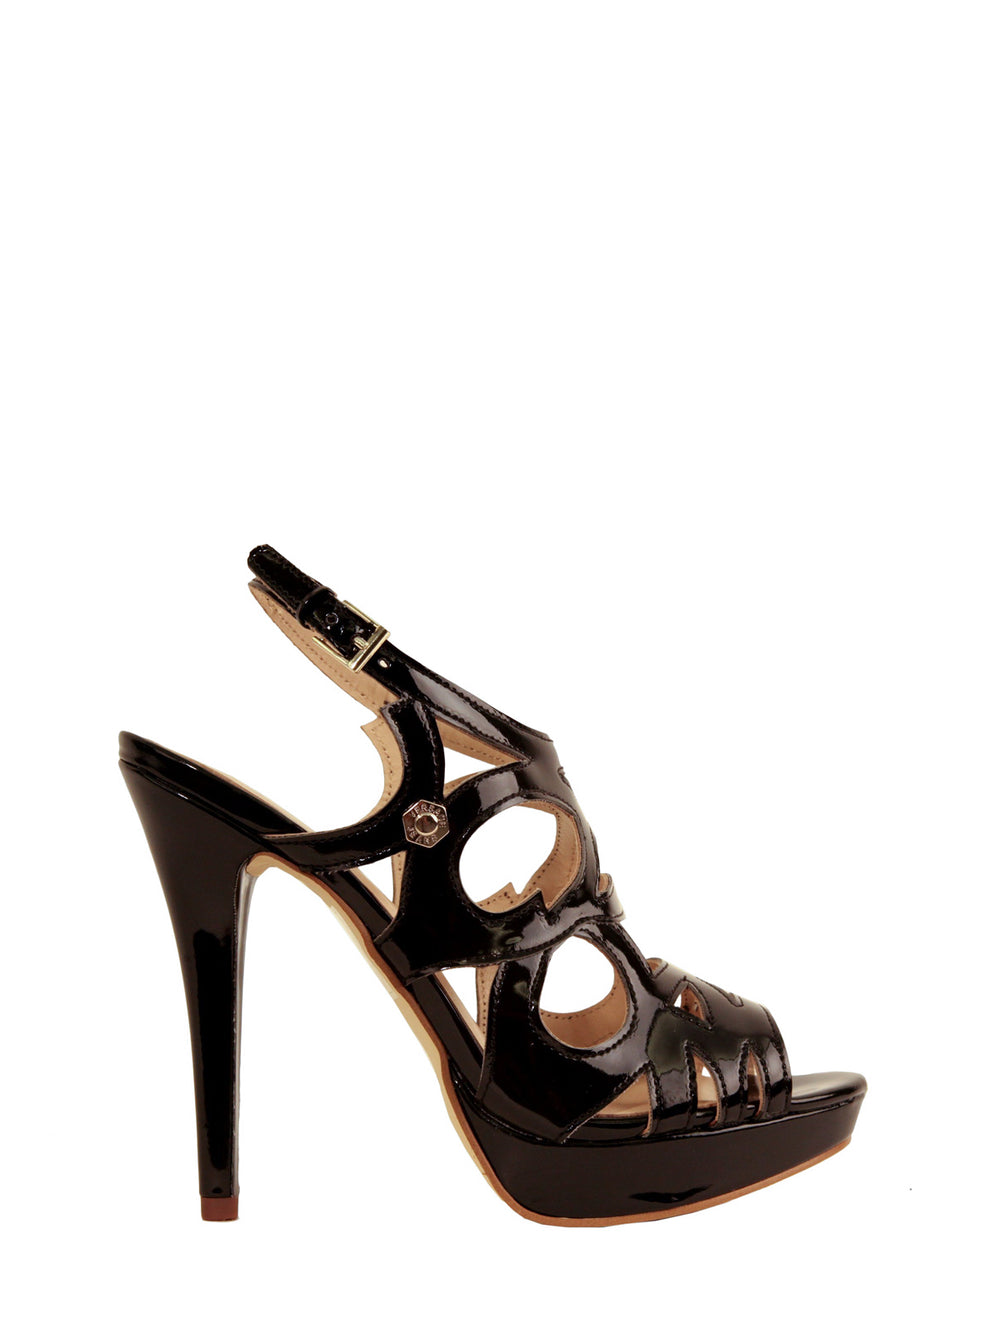 Black Sandals, VERSACE JEANS - elilhaam.com